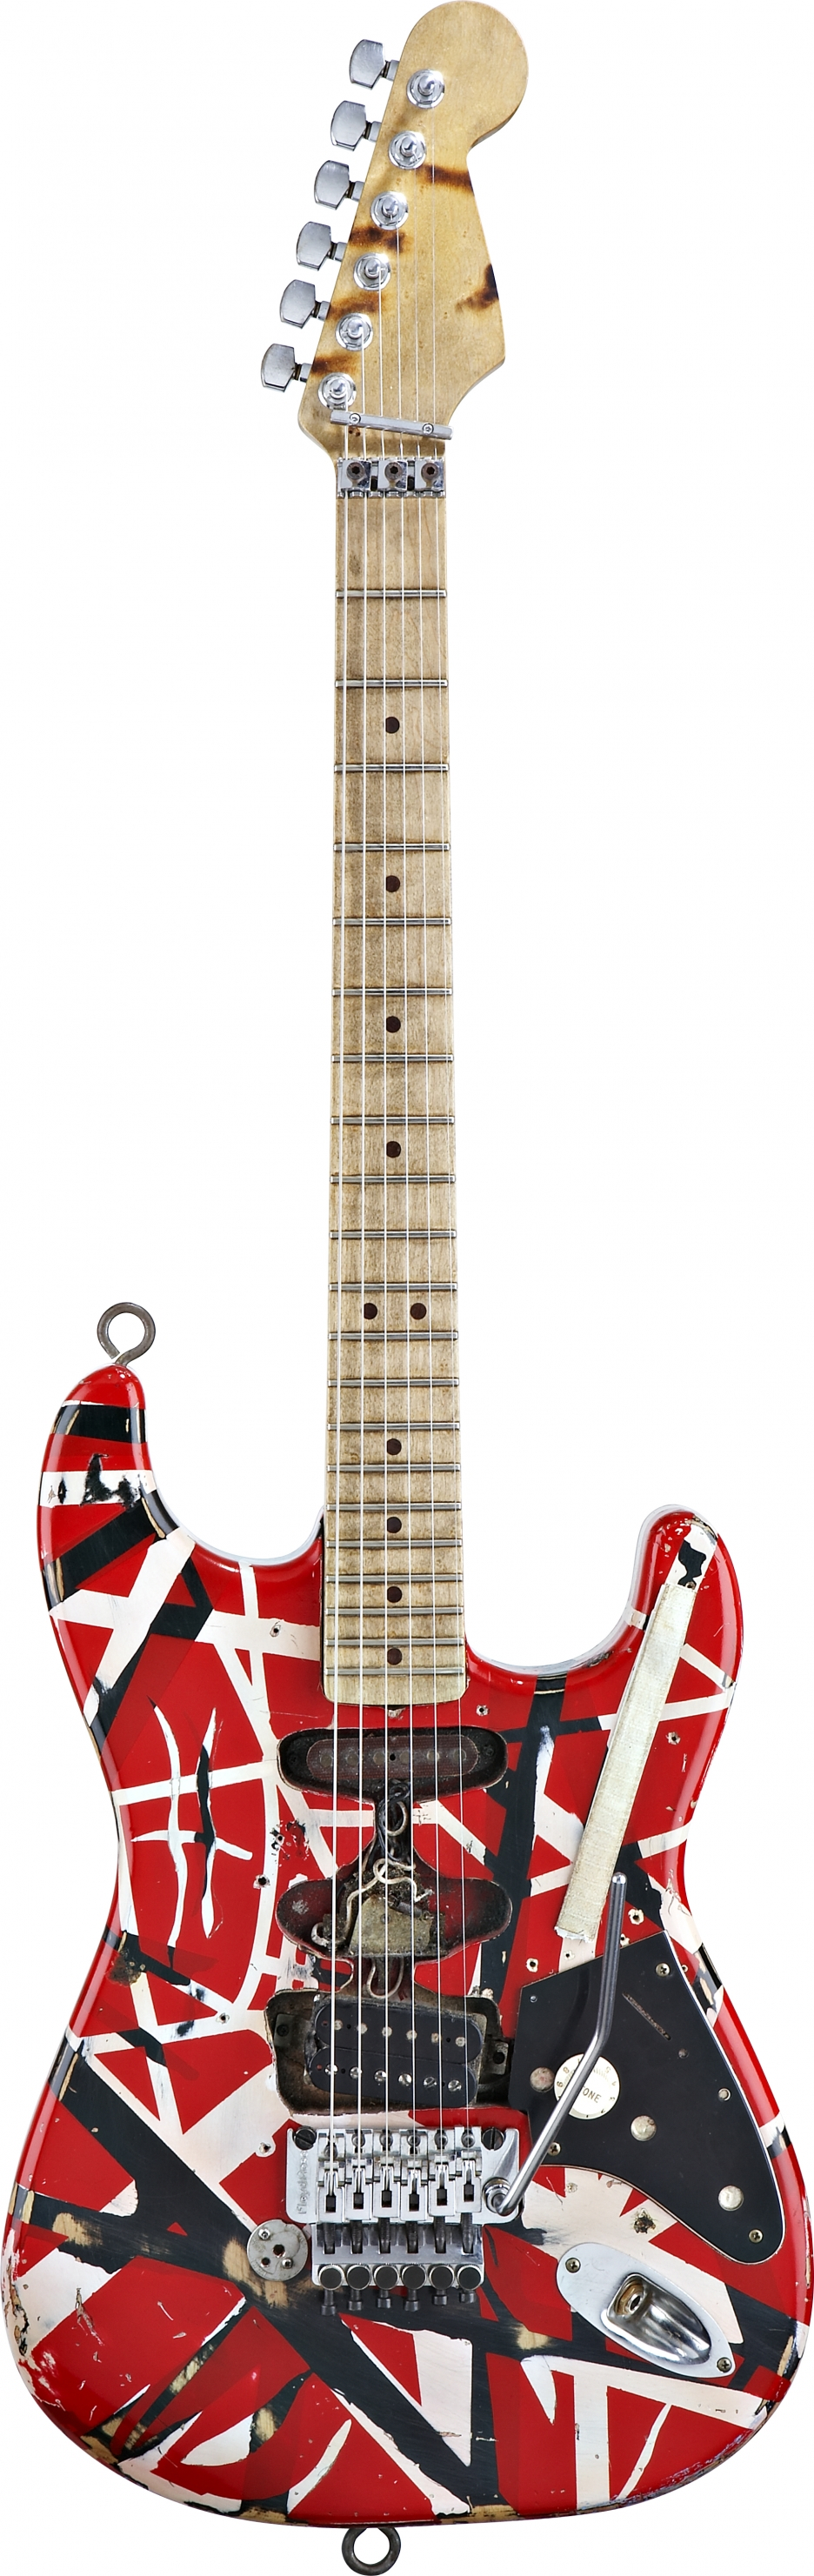 Eddie Van Halen S Original Homemade Frankenstrat Built By Him At Home For 130 Dollars Made From A Stratocaster Ash Body Music Guitar Eddie Van Halen Guitar